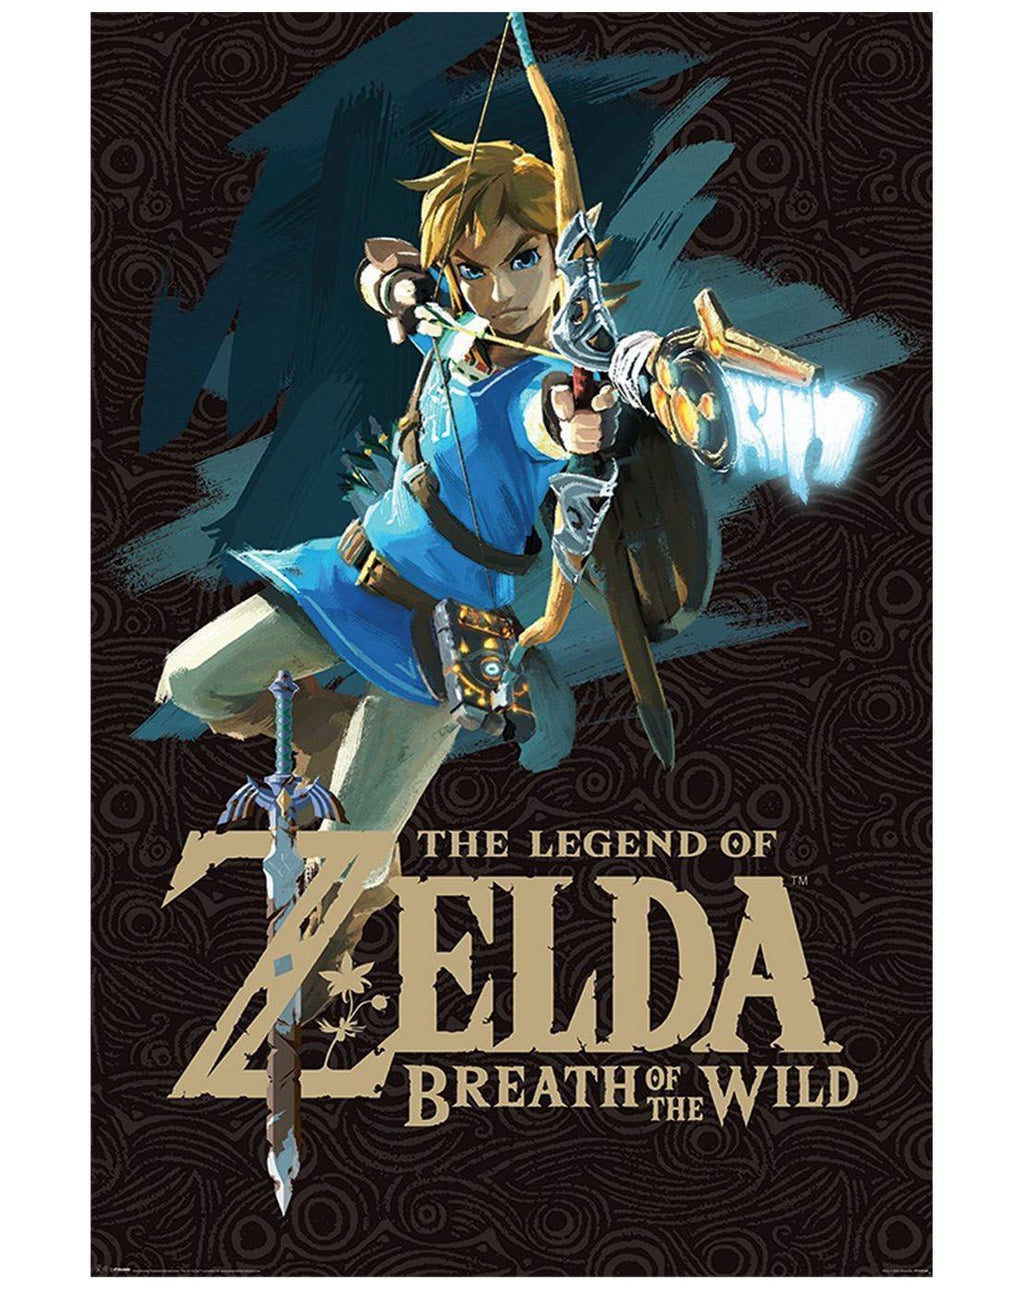 The Legend Of Zelda Breath Of The Wild Game Cover Poster